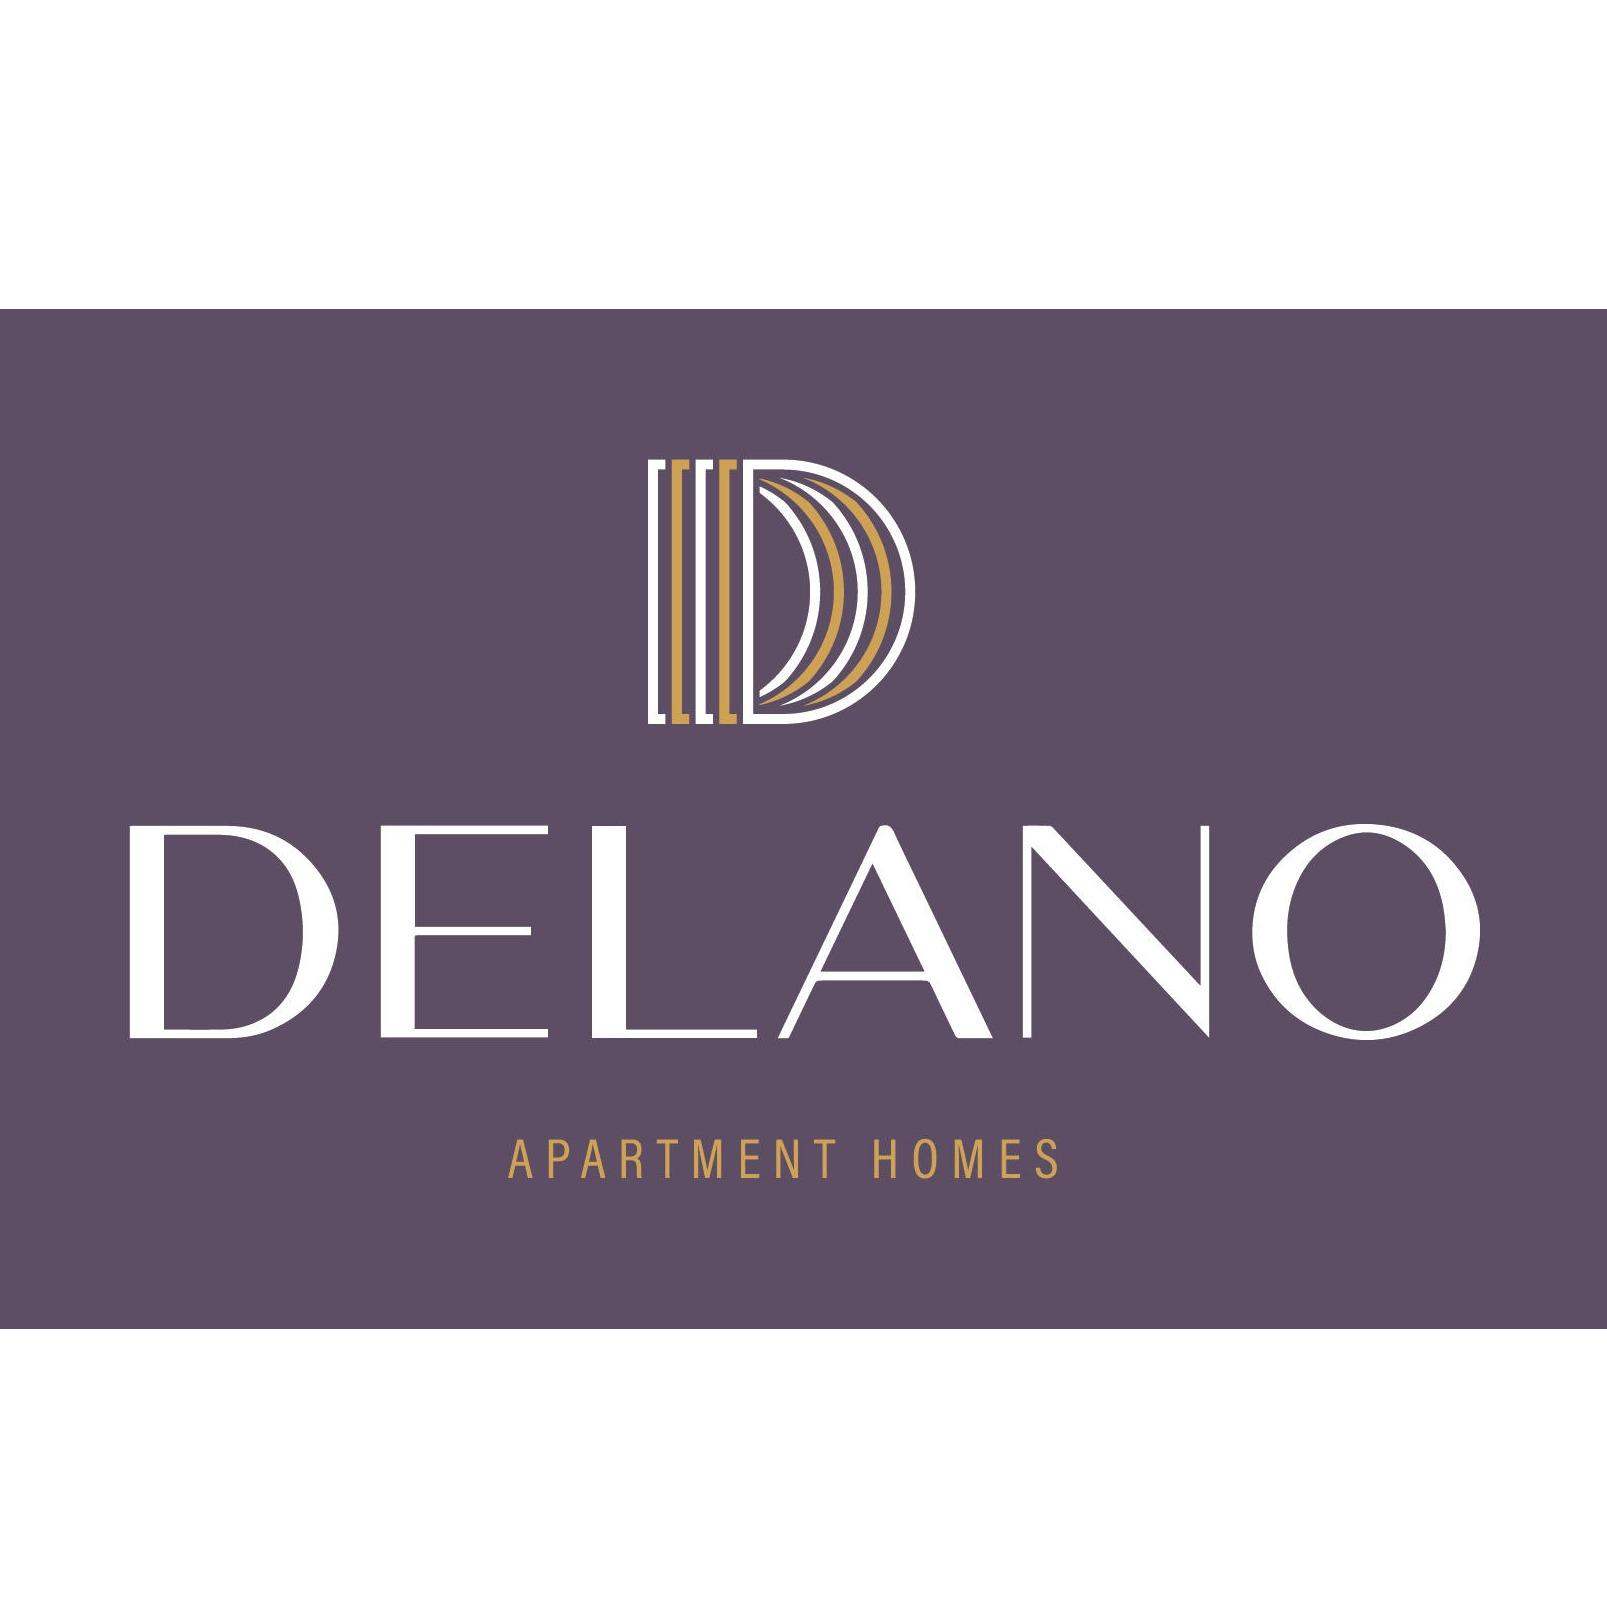 Delano Apartment Homes